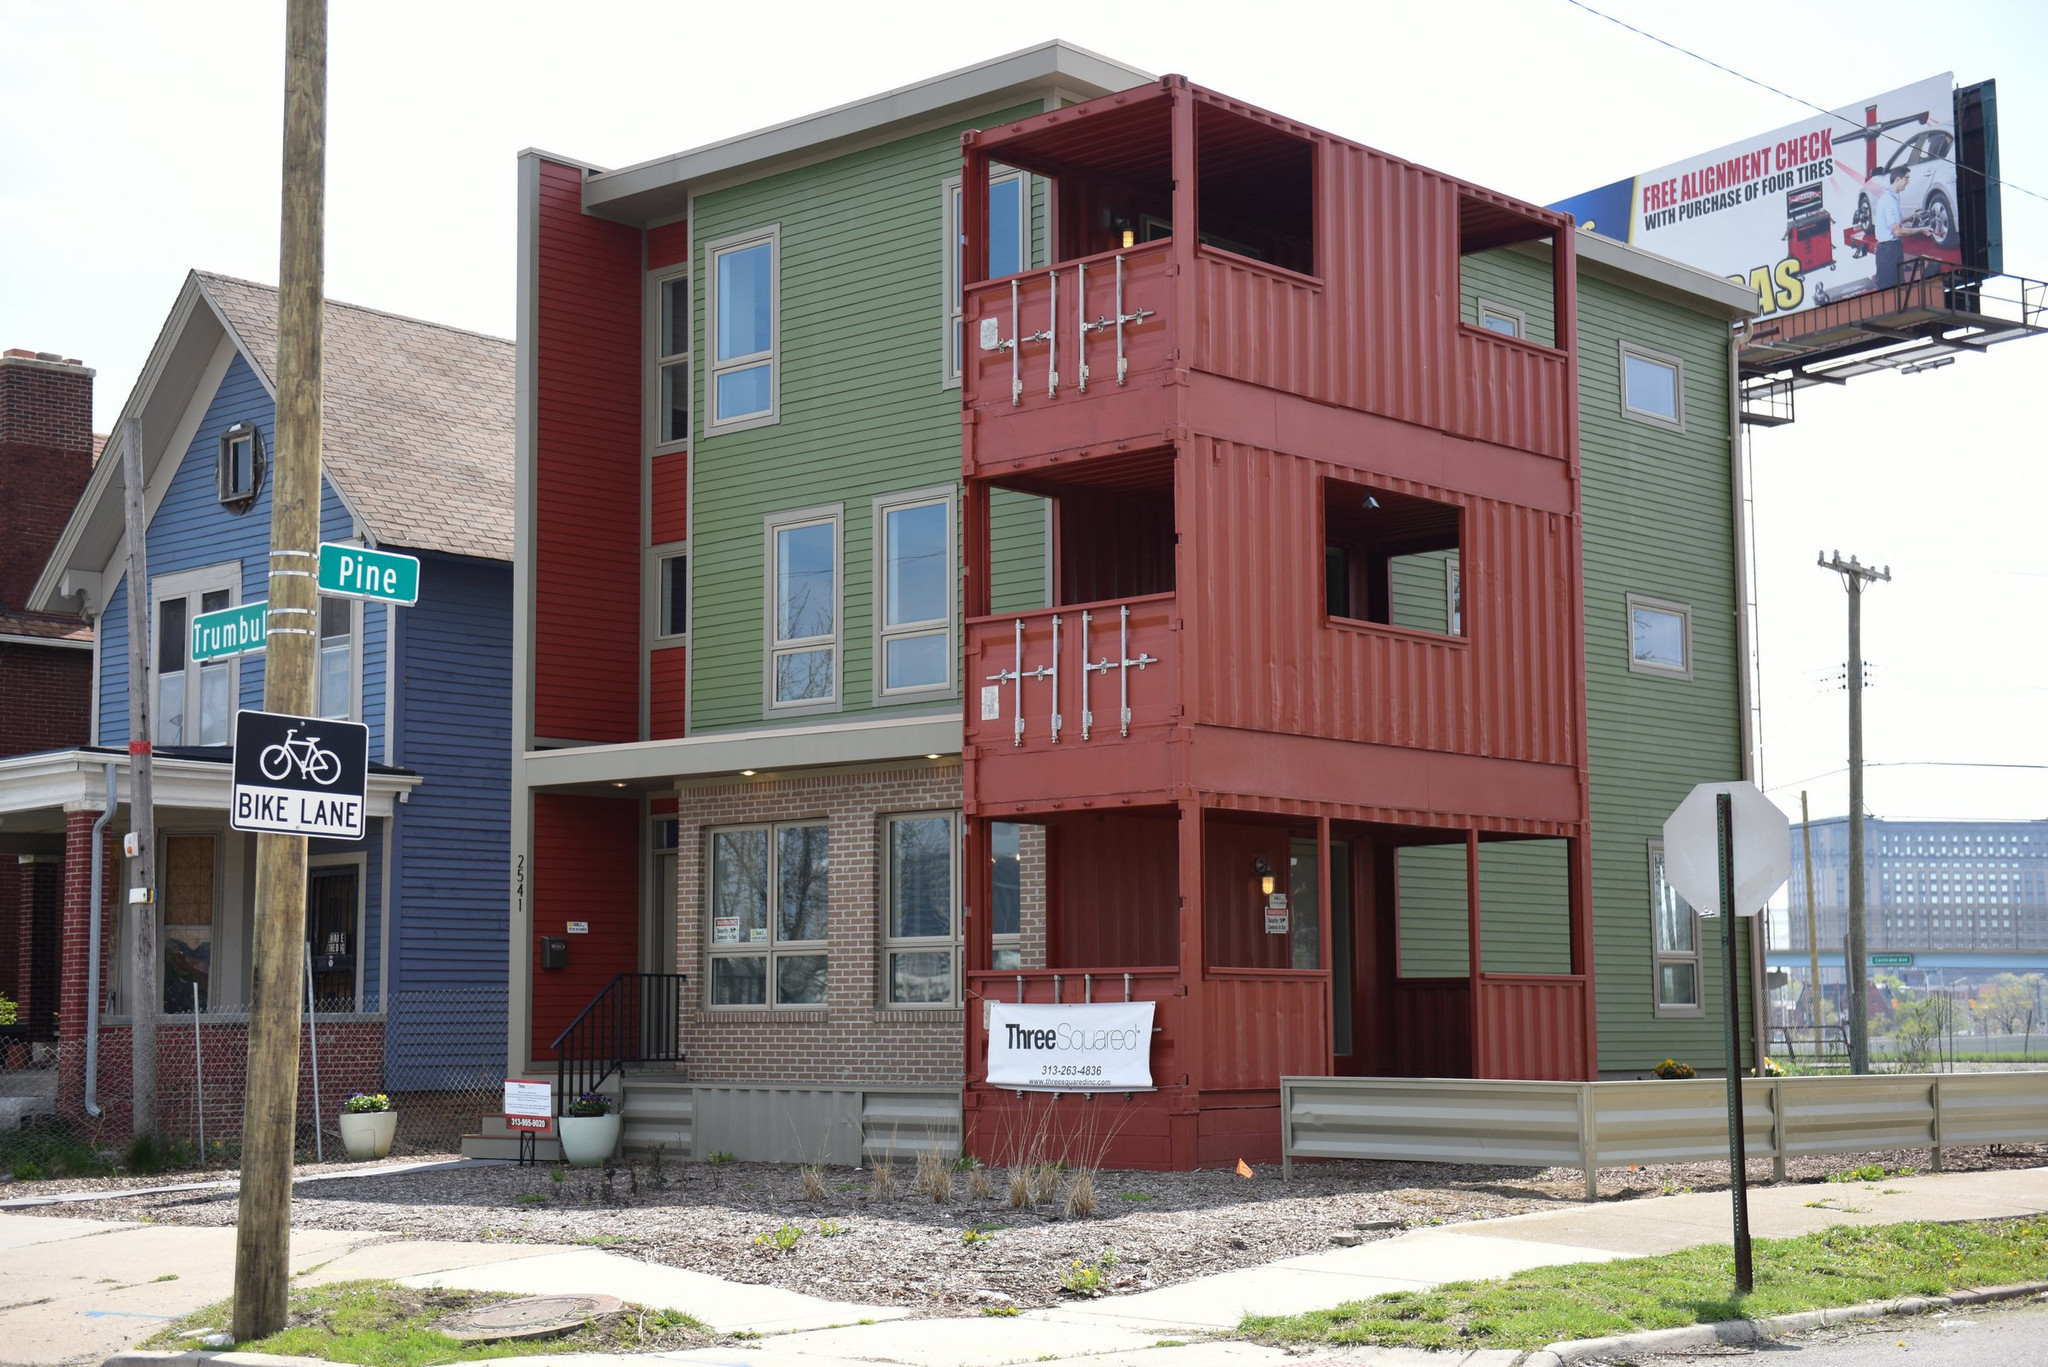 Shipping container homes in detroit chicago tribune - Shipping container homes chicago ...